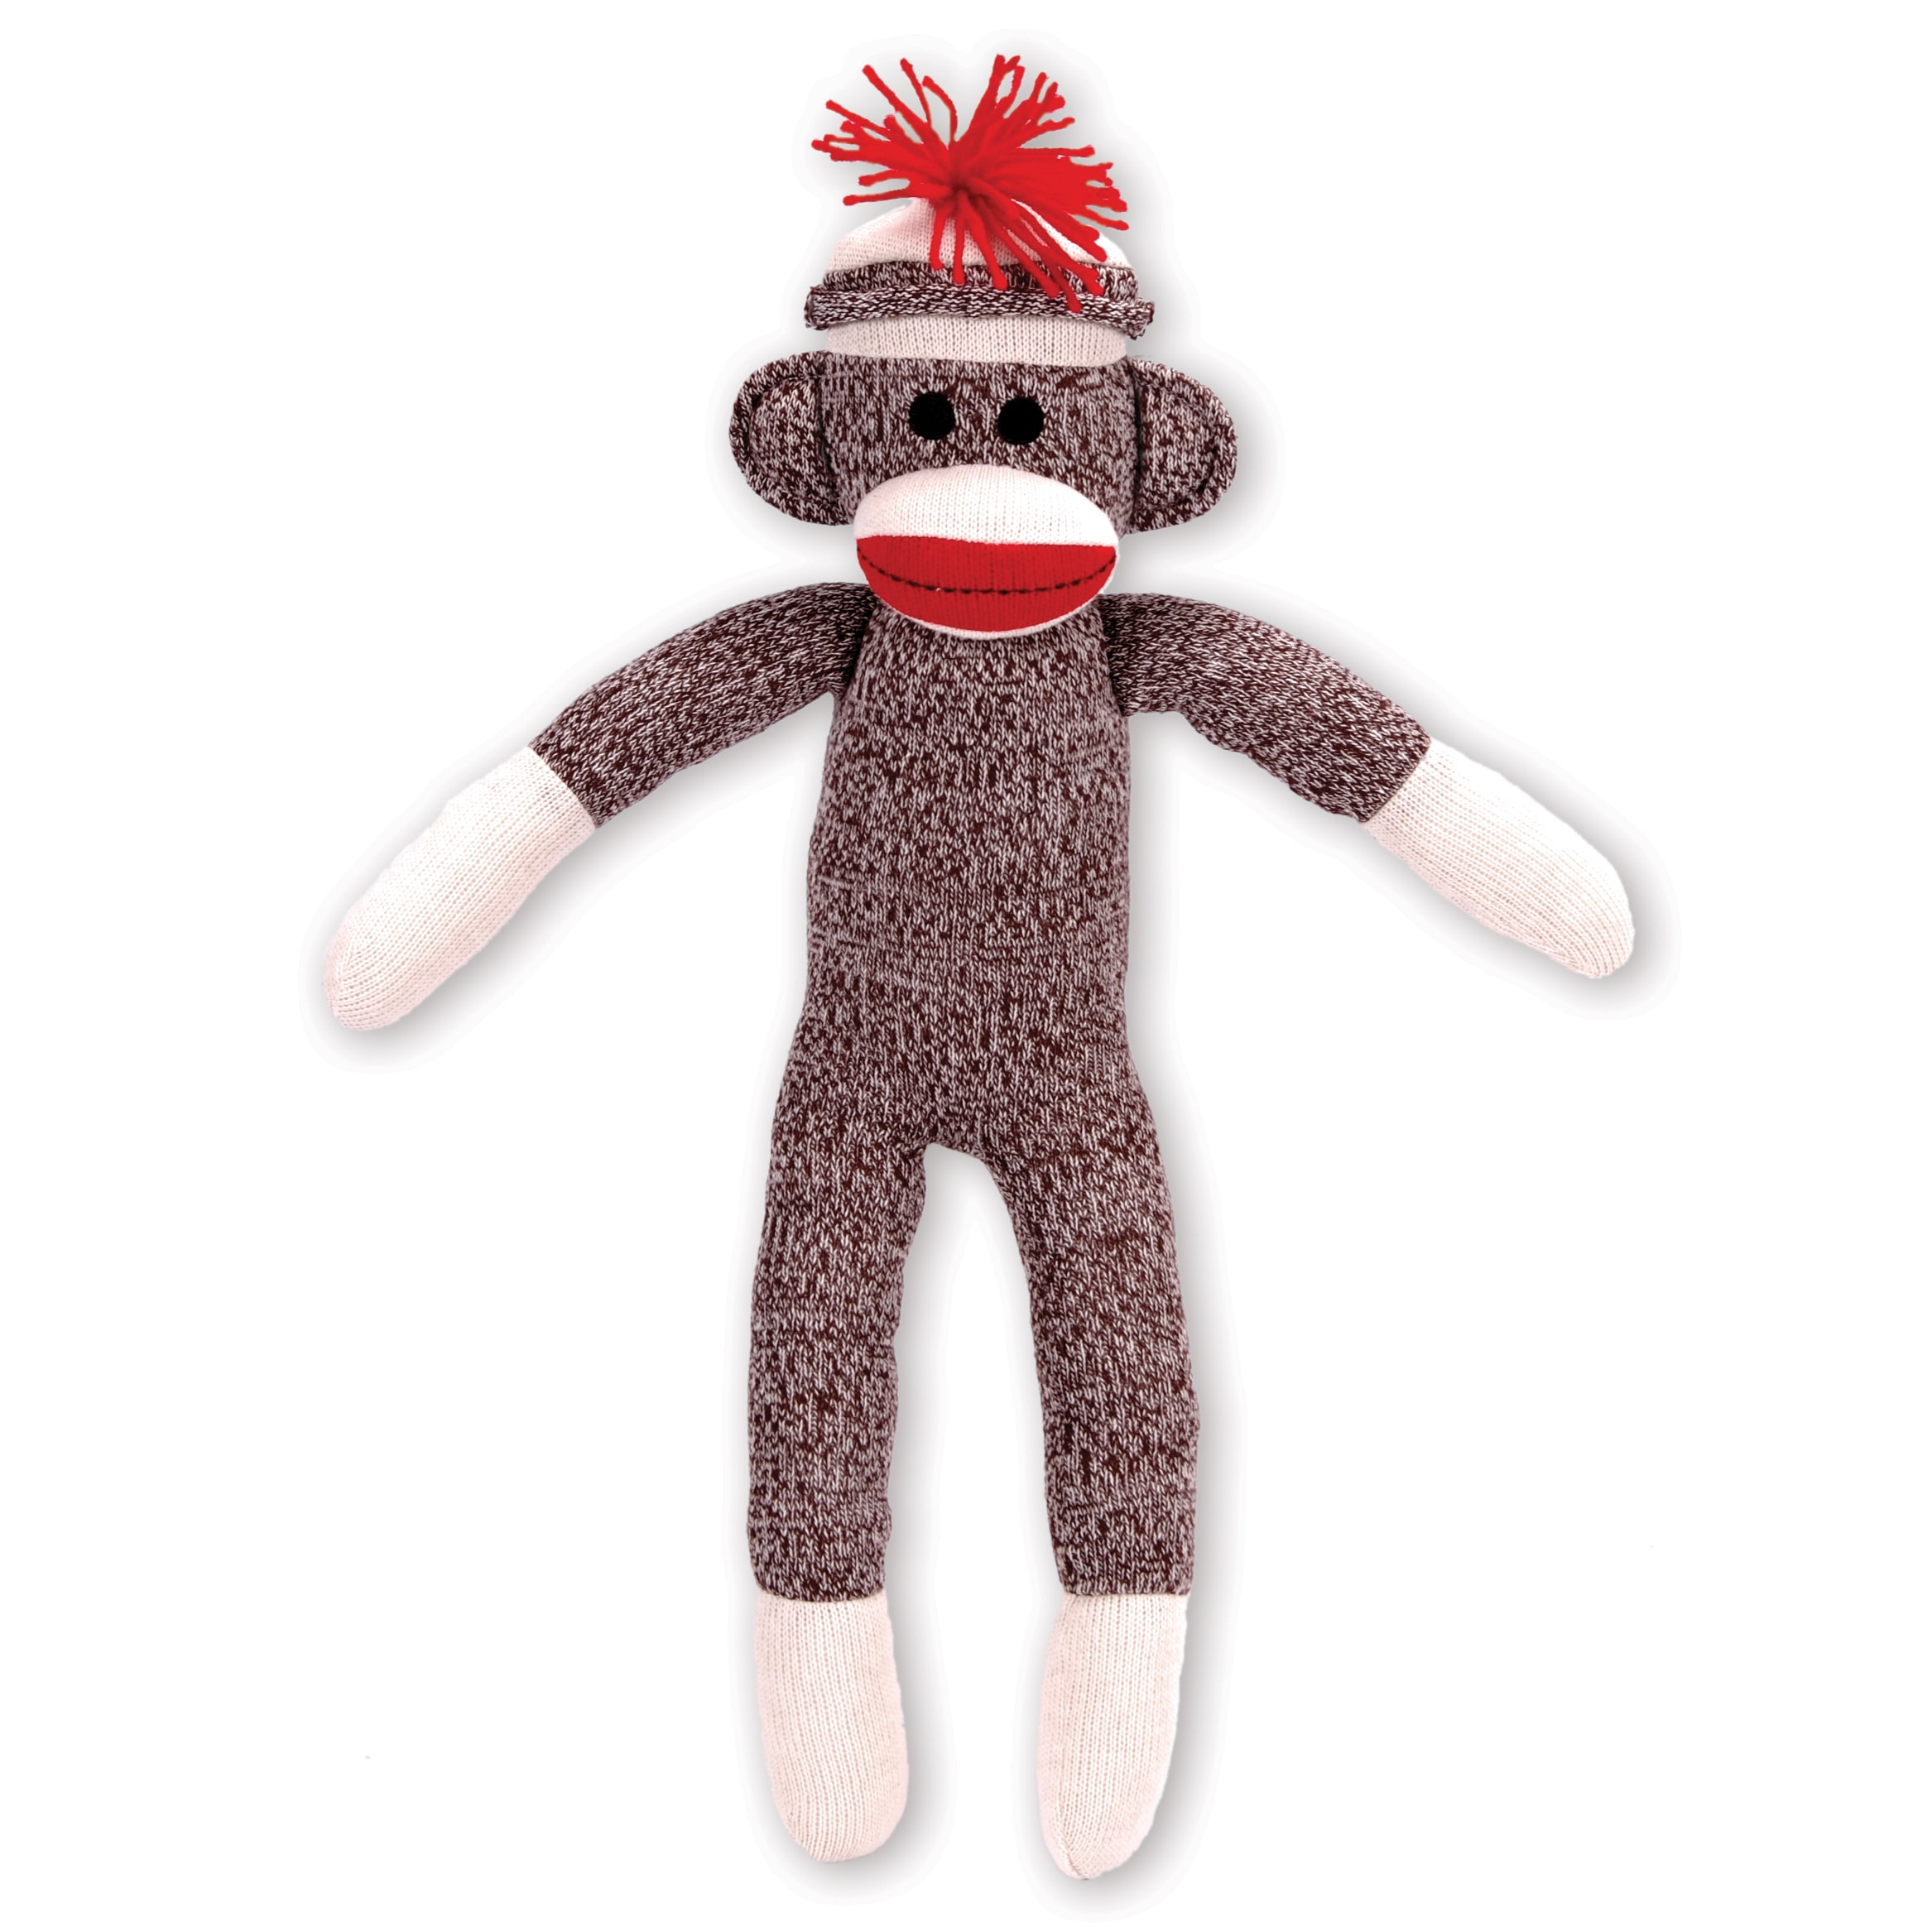 Schylling Schylling Sock Monkey Stuffed Animal